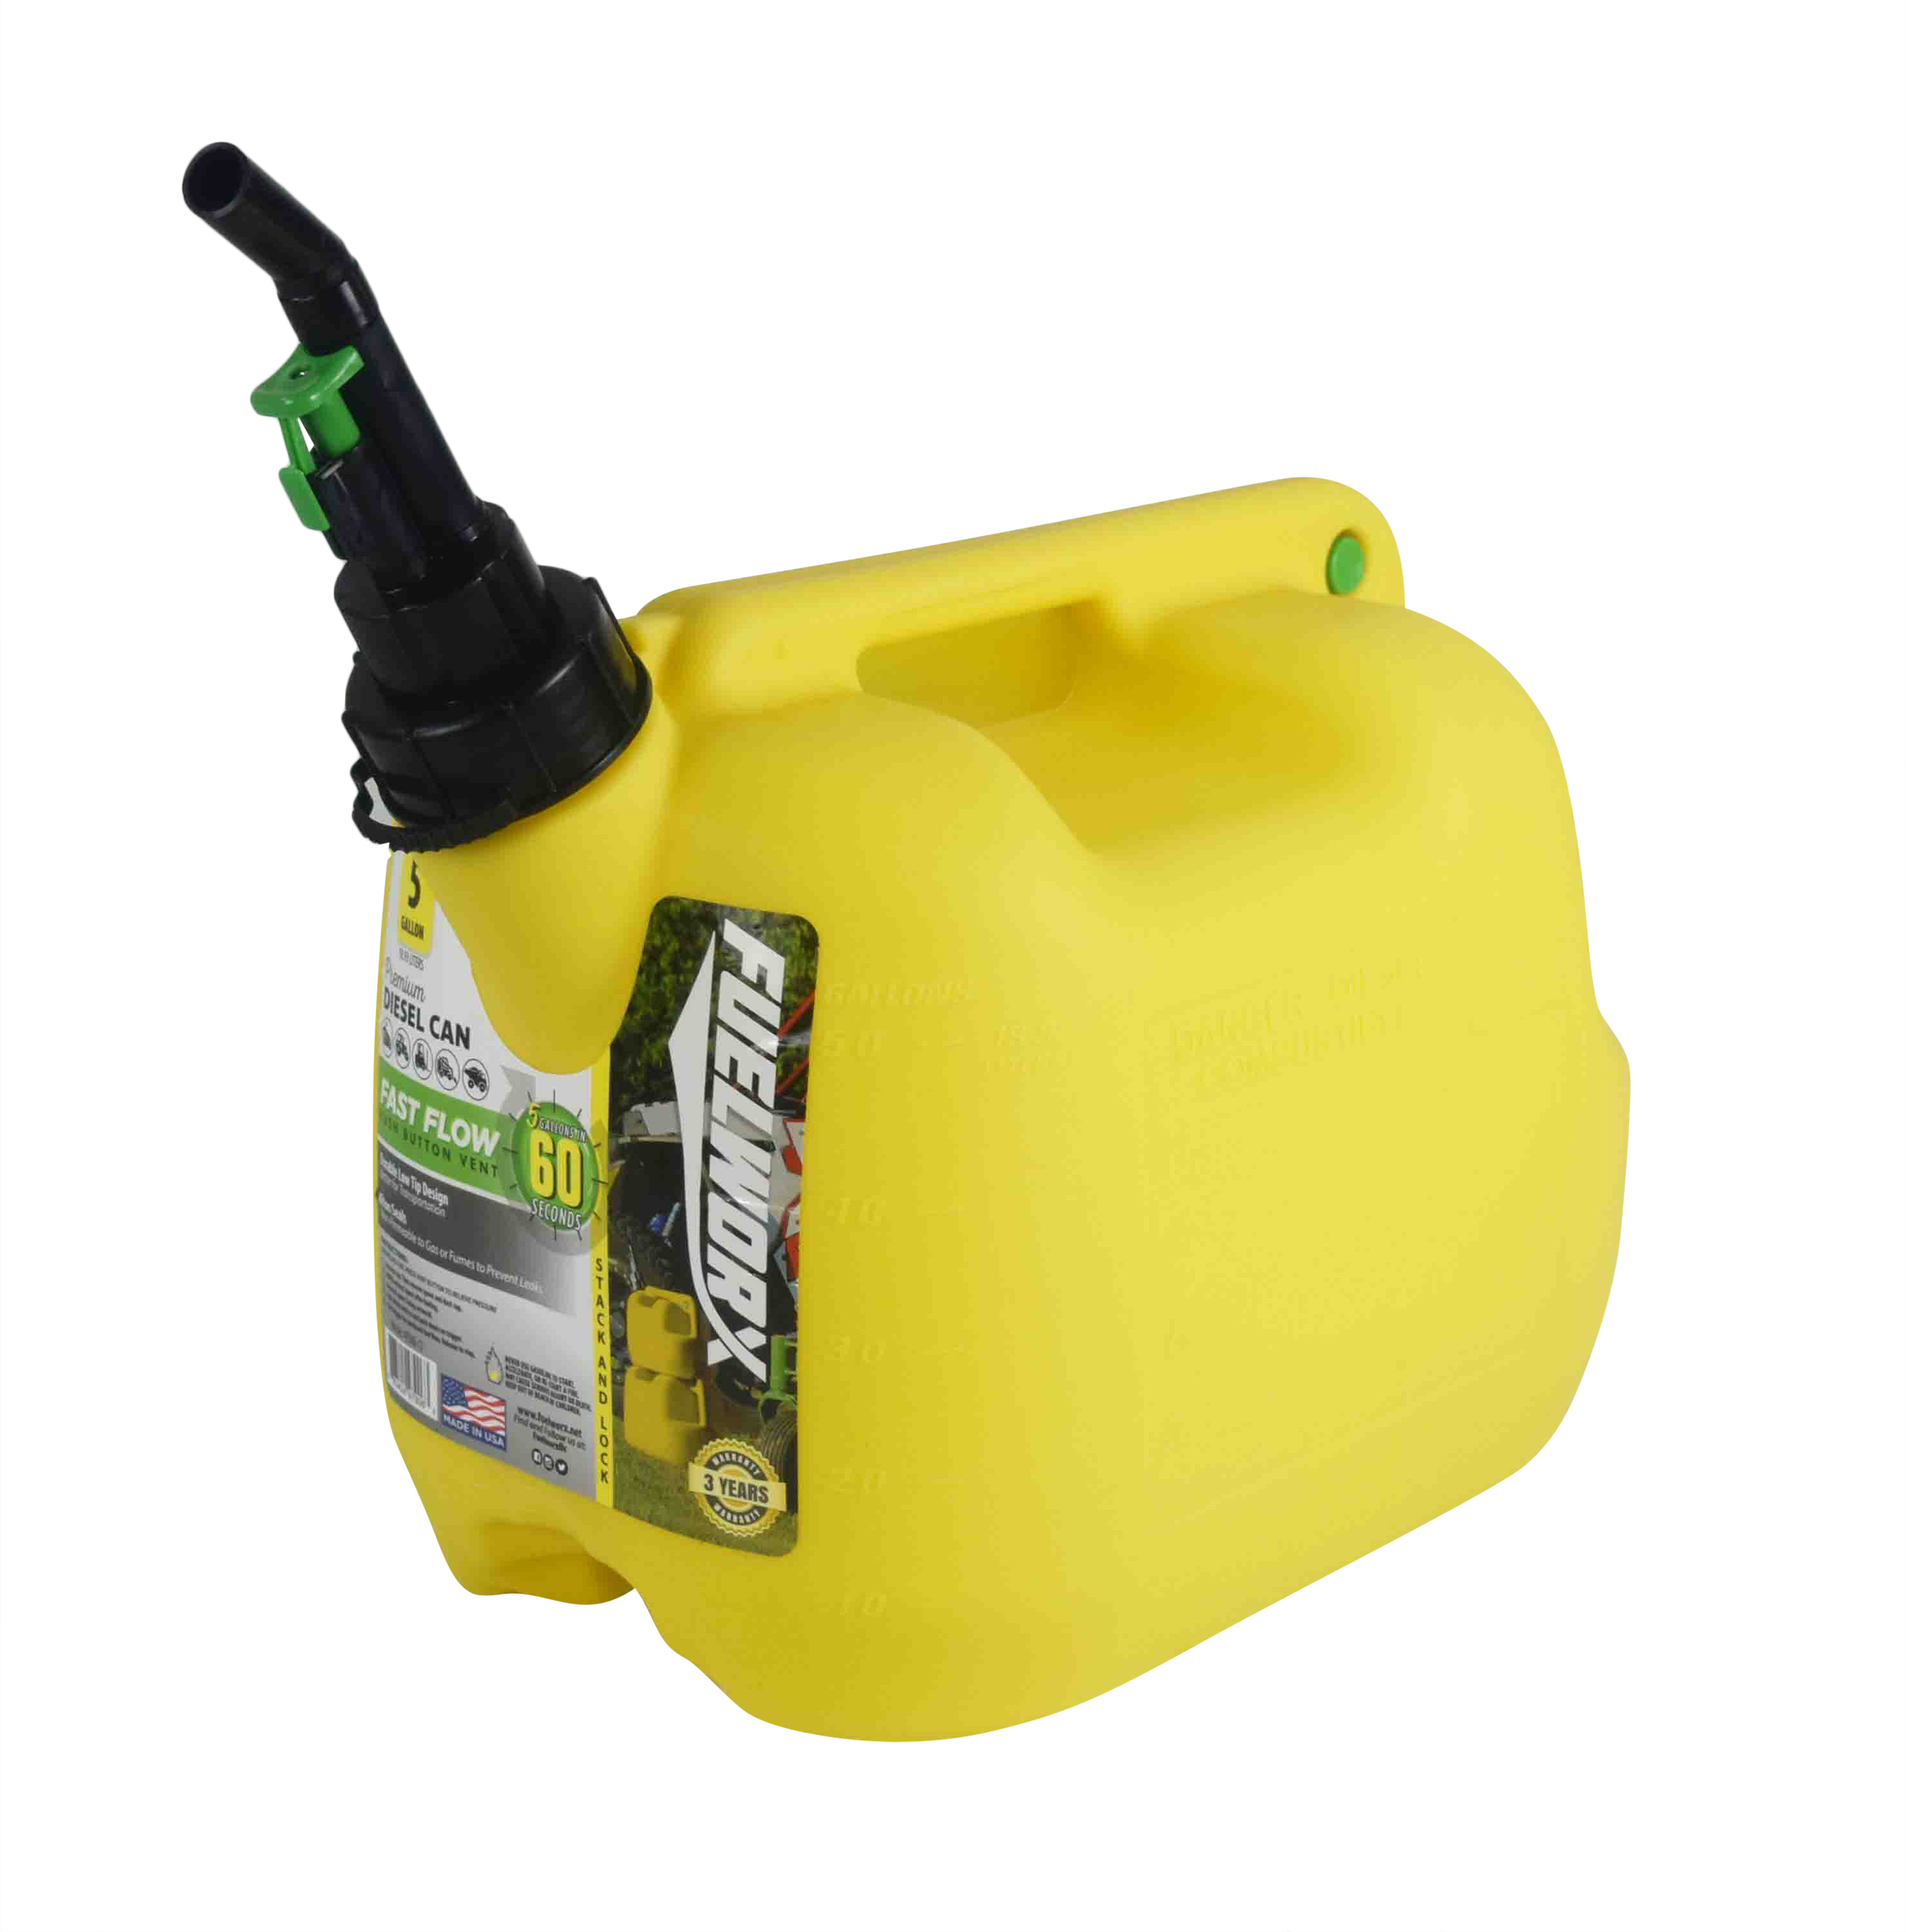 Fuelworx-Yellow-5-Gallon-Stackable-Fast-Pour-Diesel-Fuel-Cans-CARB-Compliant-Made-in-The-USA-5-Gallon-Diesel-Cans-3-Pack-image-3